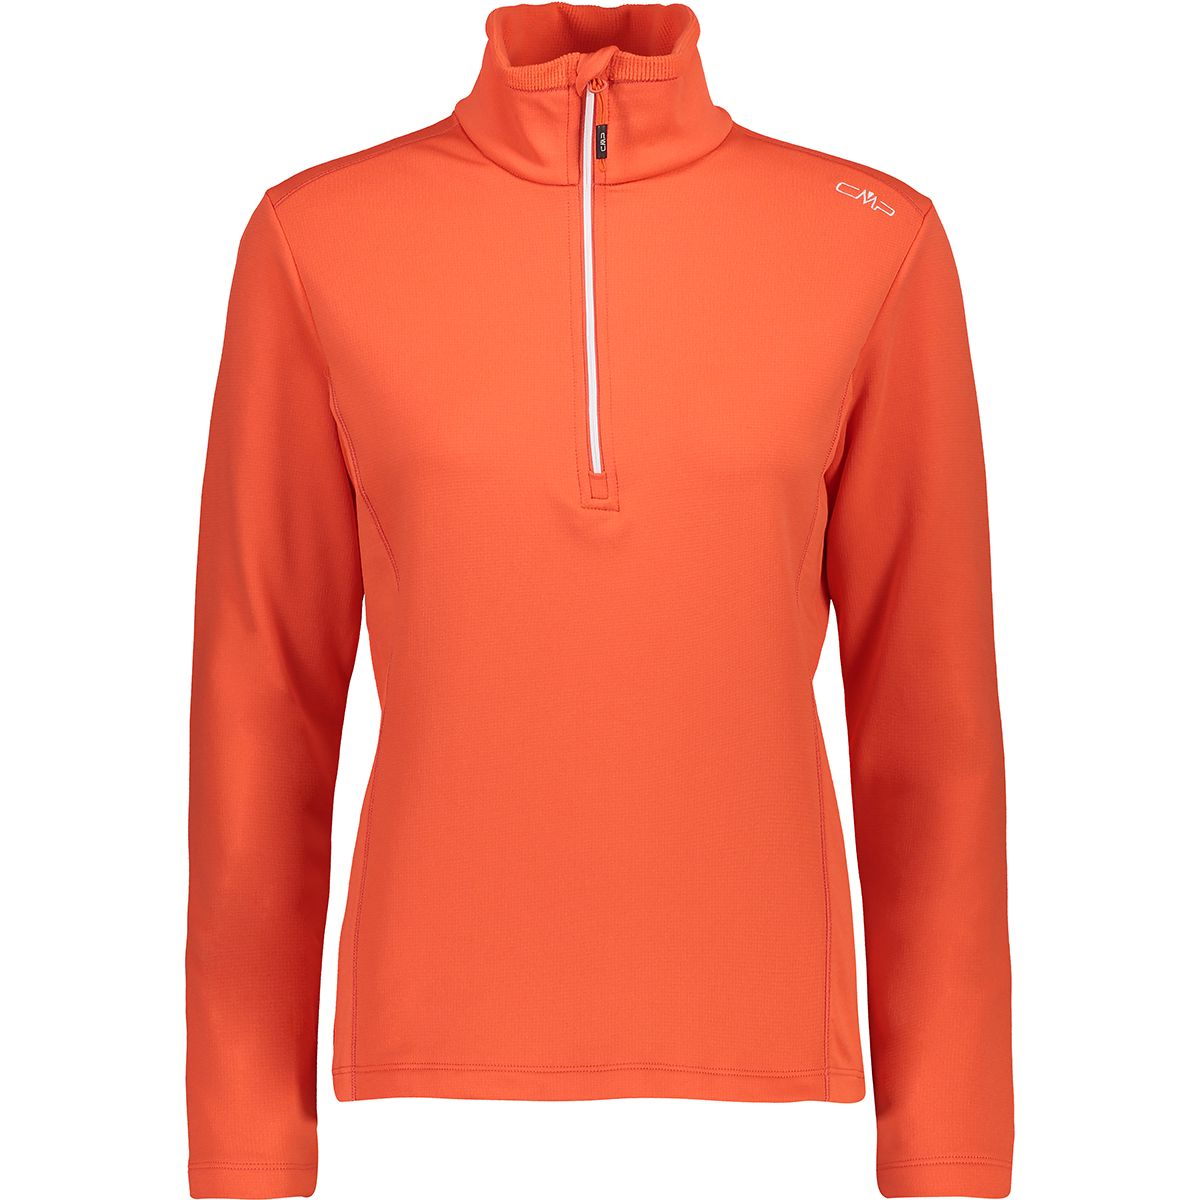 CMP Damen Grid Tech Pullover (Größe S, Orange) | Pullover > Damen